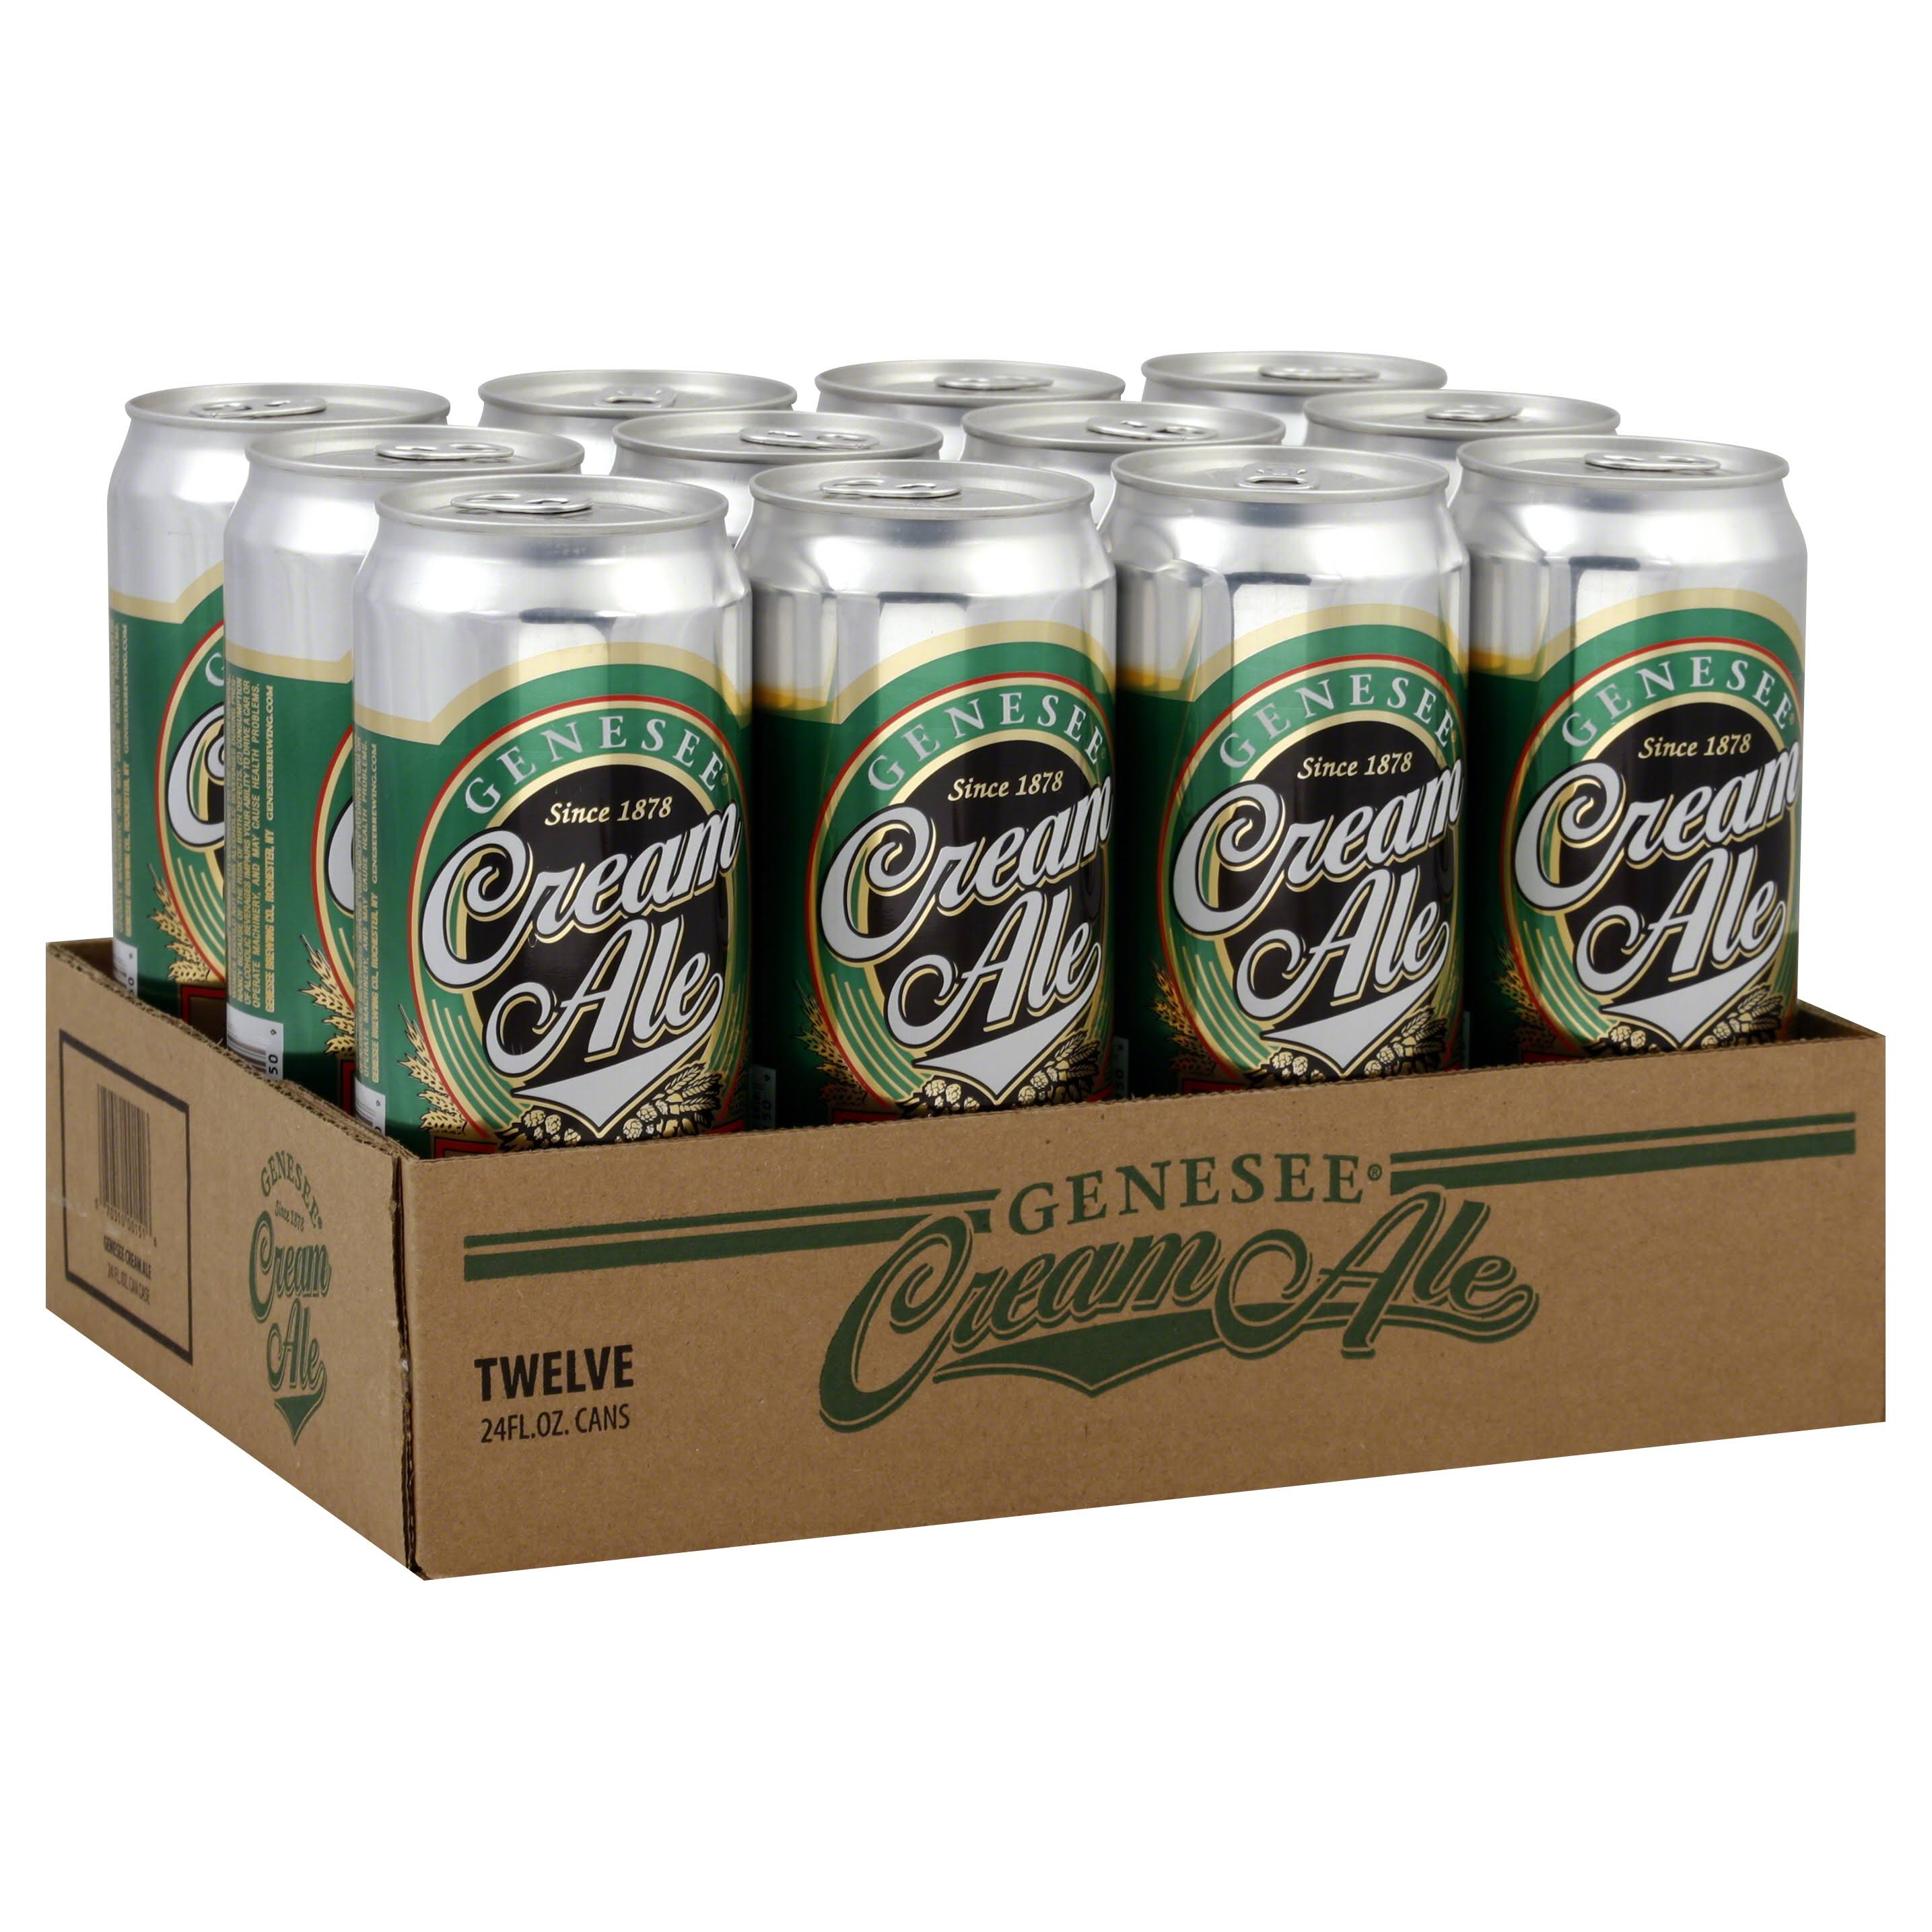 Genesee Ale, Cream - 12 pack, 24 fl oz